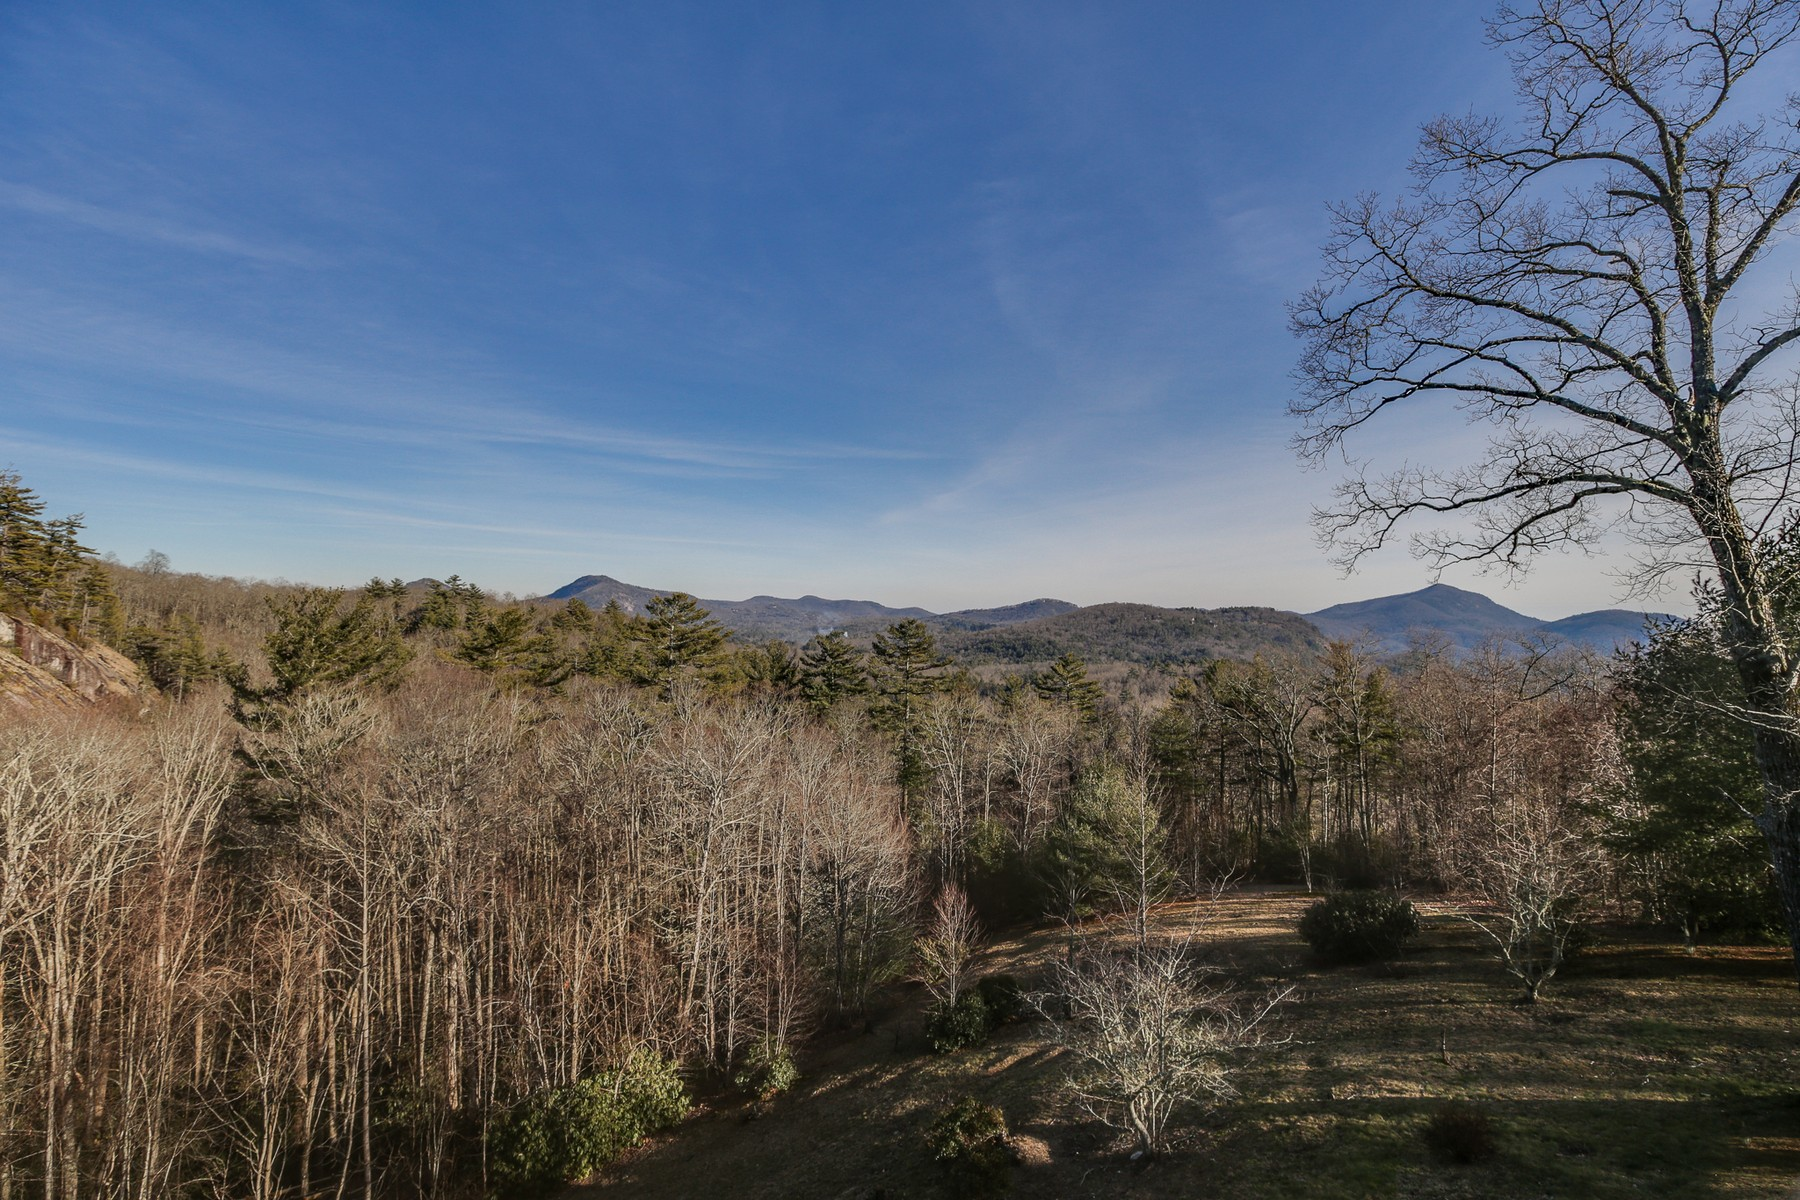 Single Family Homes for Sale at 260 Cliff Ridge Cashiers, North Carolina 28717 United States